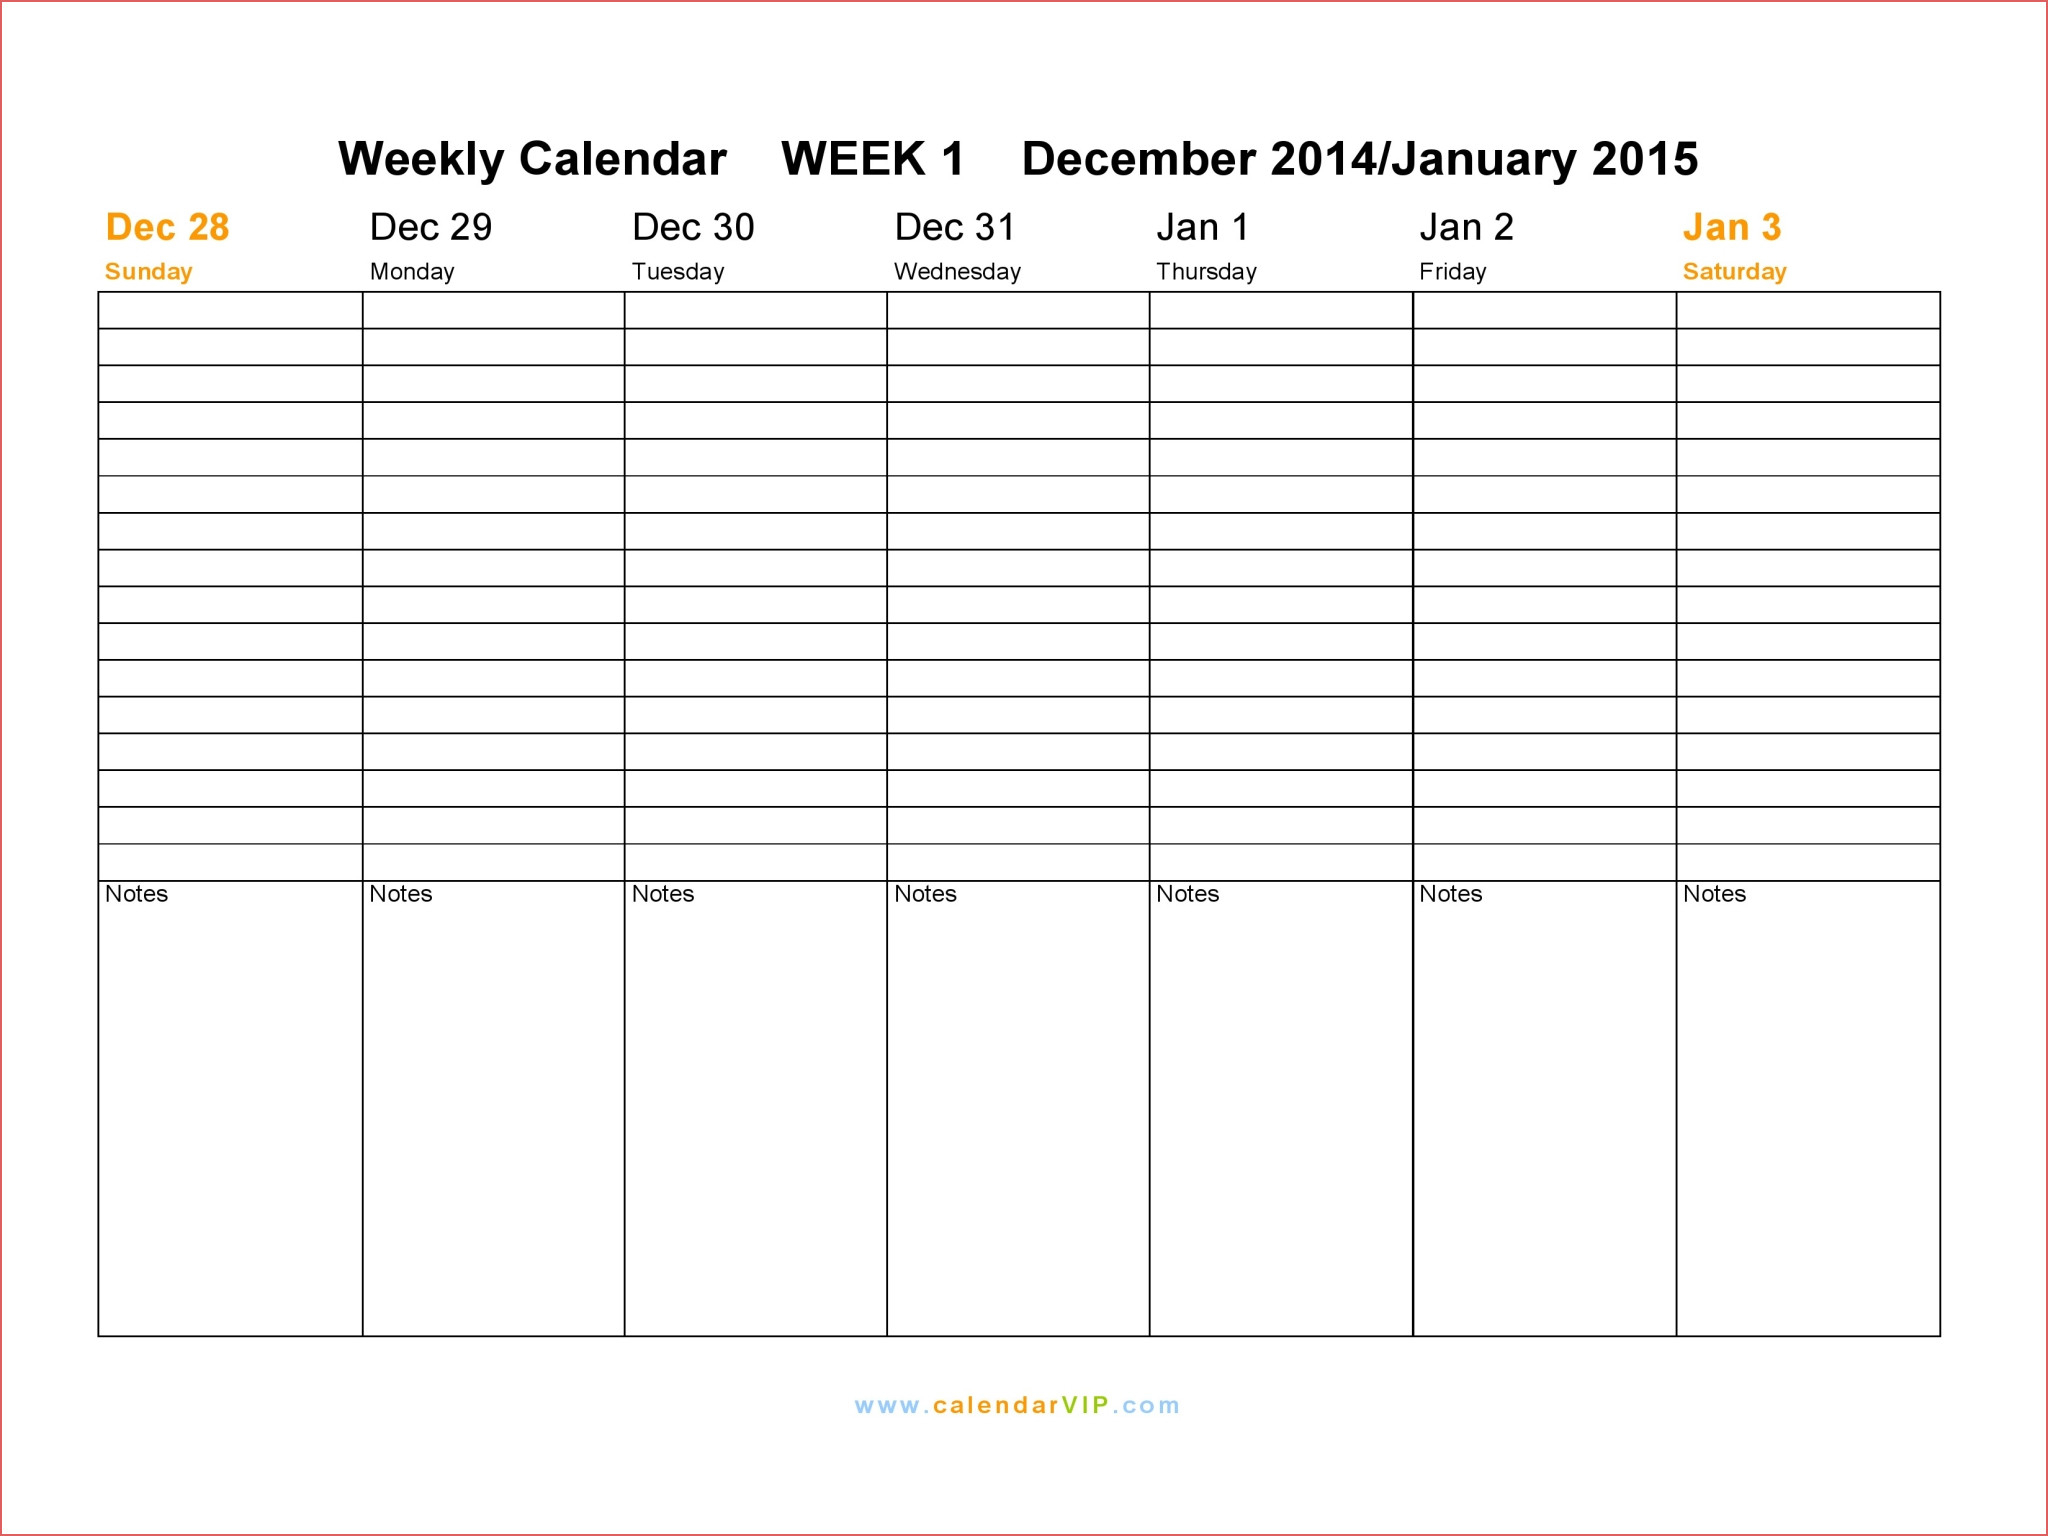 016 Weekly Calendar Template Madinbelgrade Free Printable with Printable Week Calendar